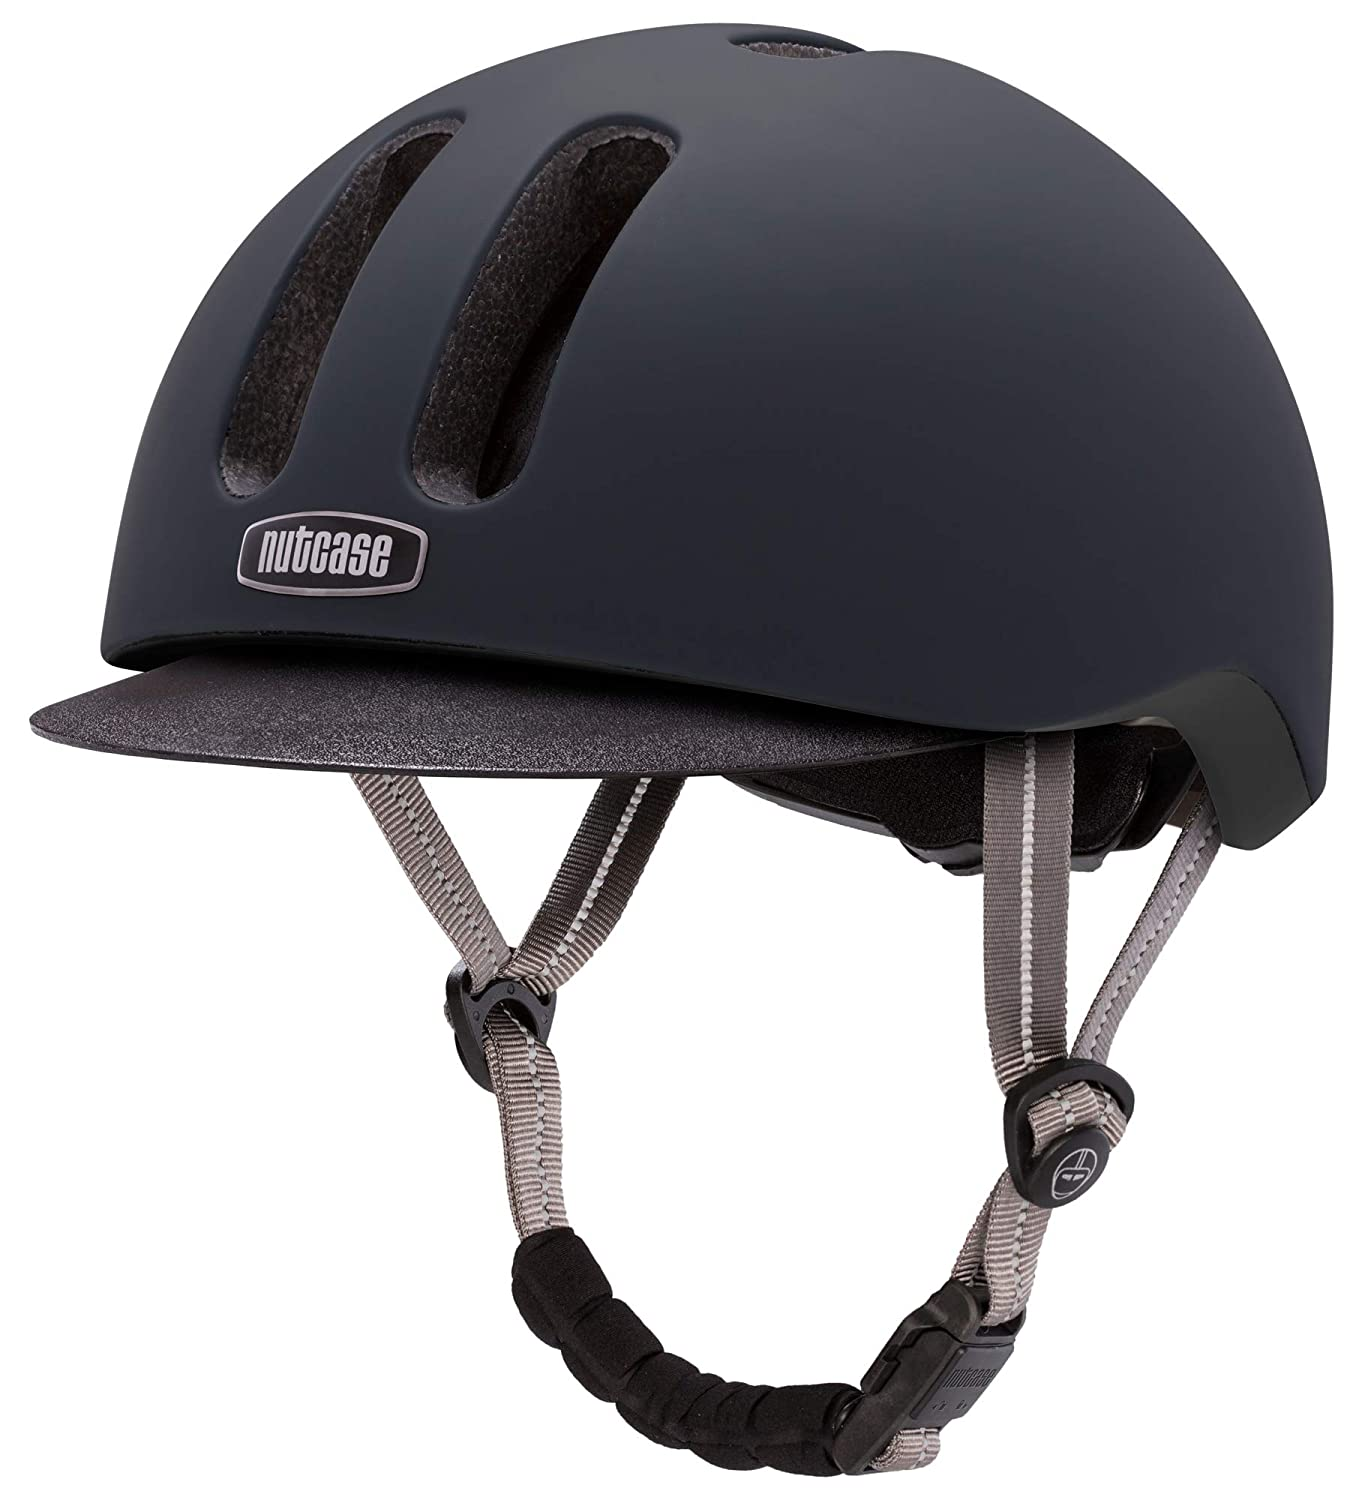 Nutcase - Metroride Bike Helmet with MIPS for Adults